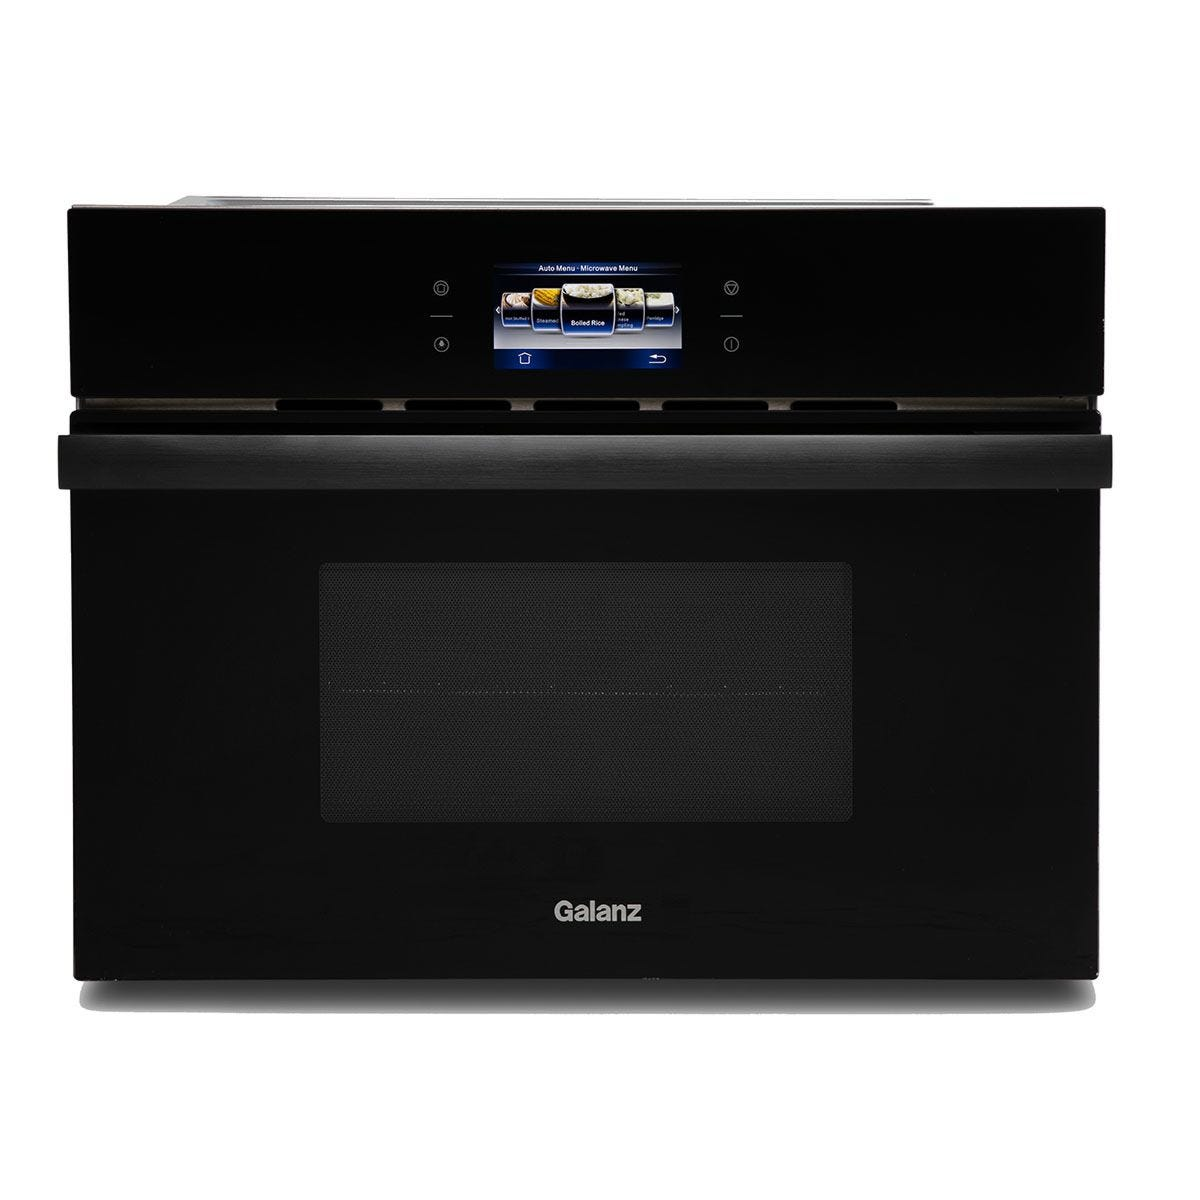 Galanz MWBIUK001B 32L 900W Built-In Combination Microwave Oven - Black